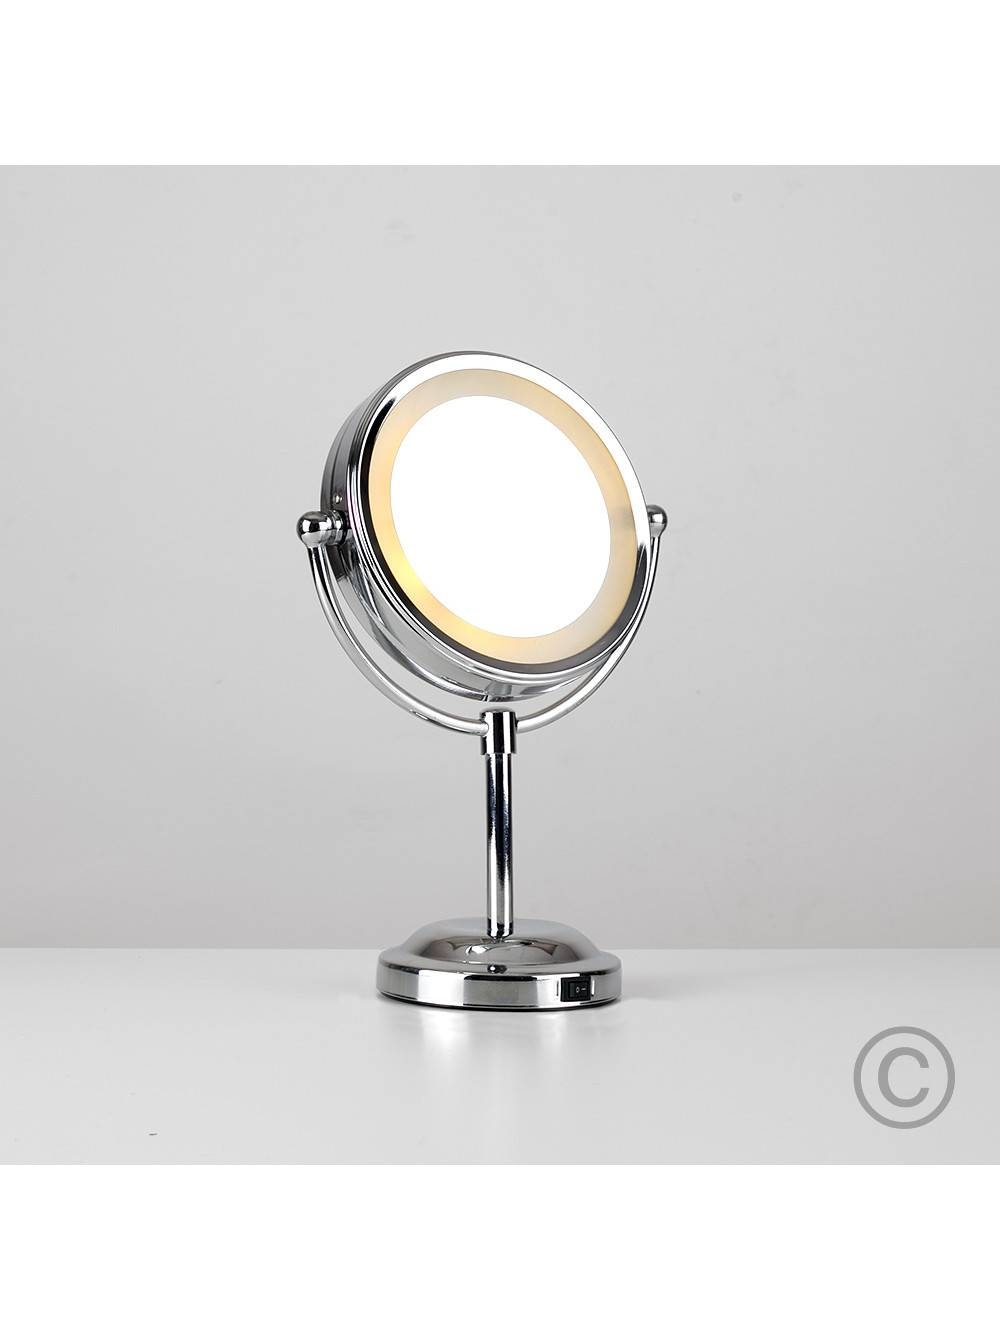 Small Round Light Up Free Standing Mirror | Valuelights regarding Small Free Standing Mirrors (Image 24 of 25)